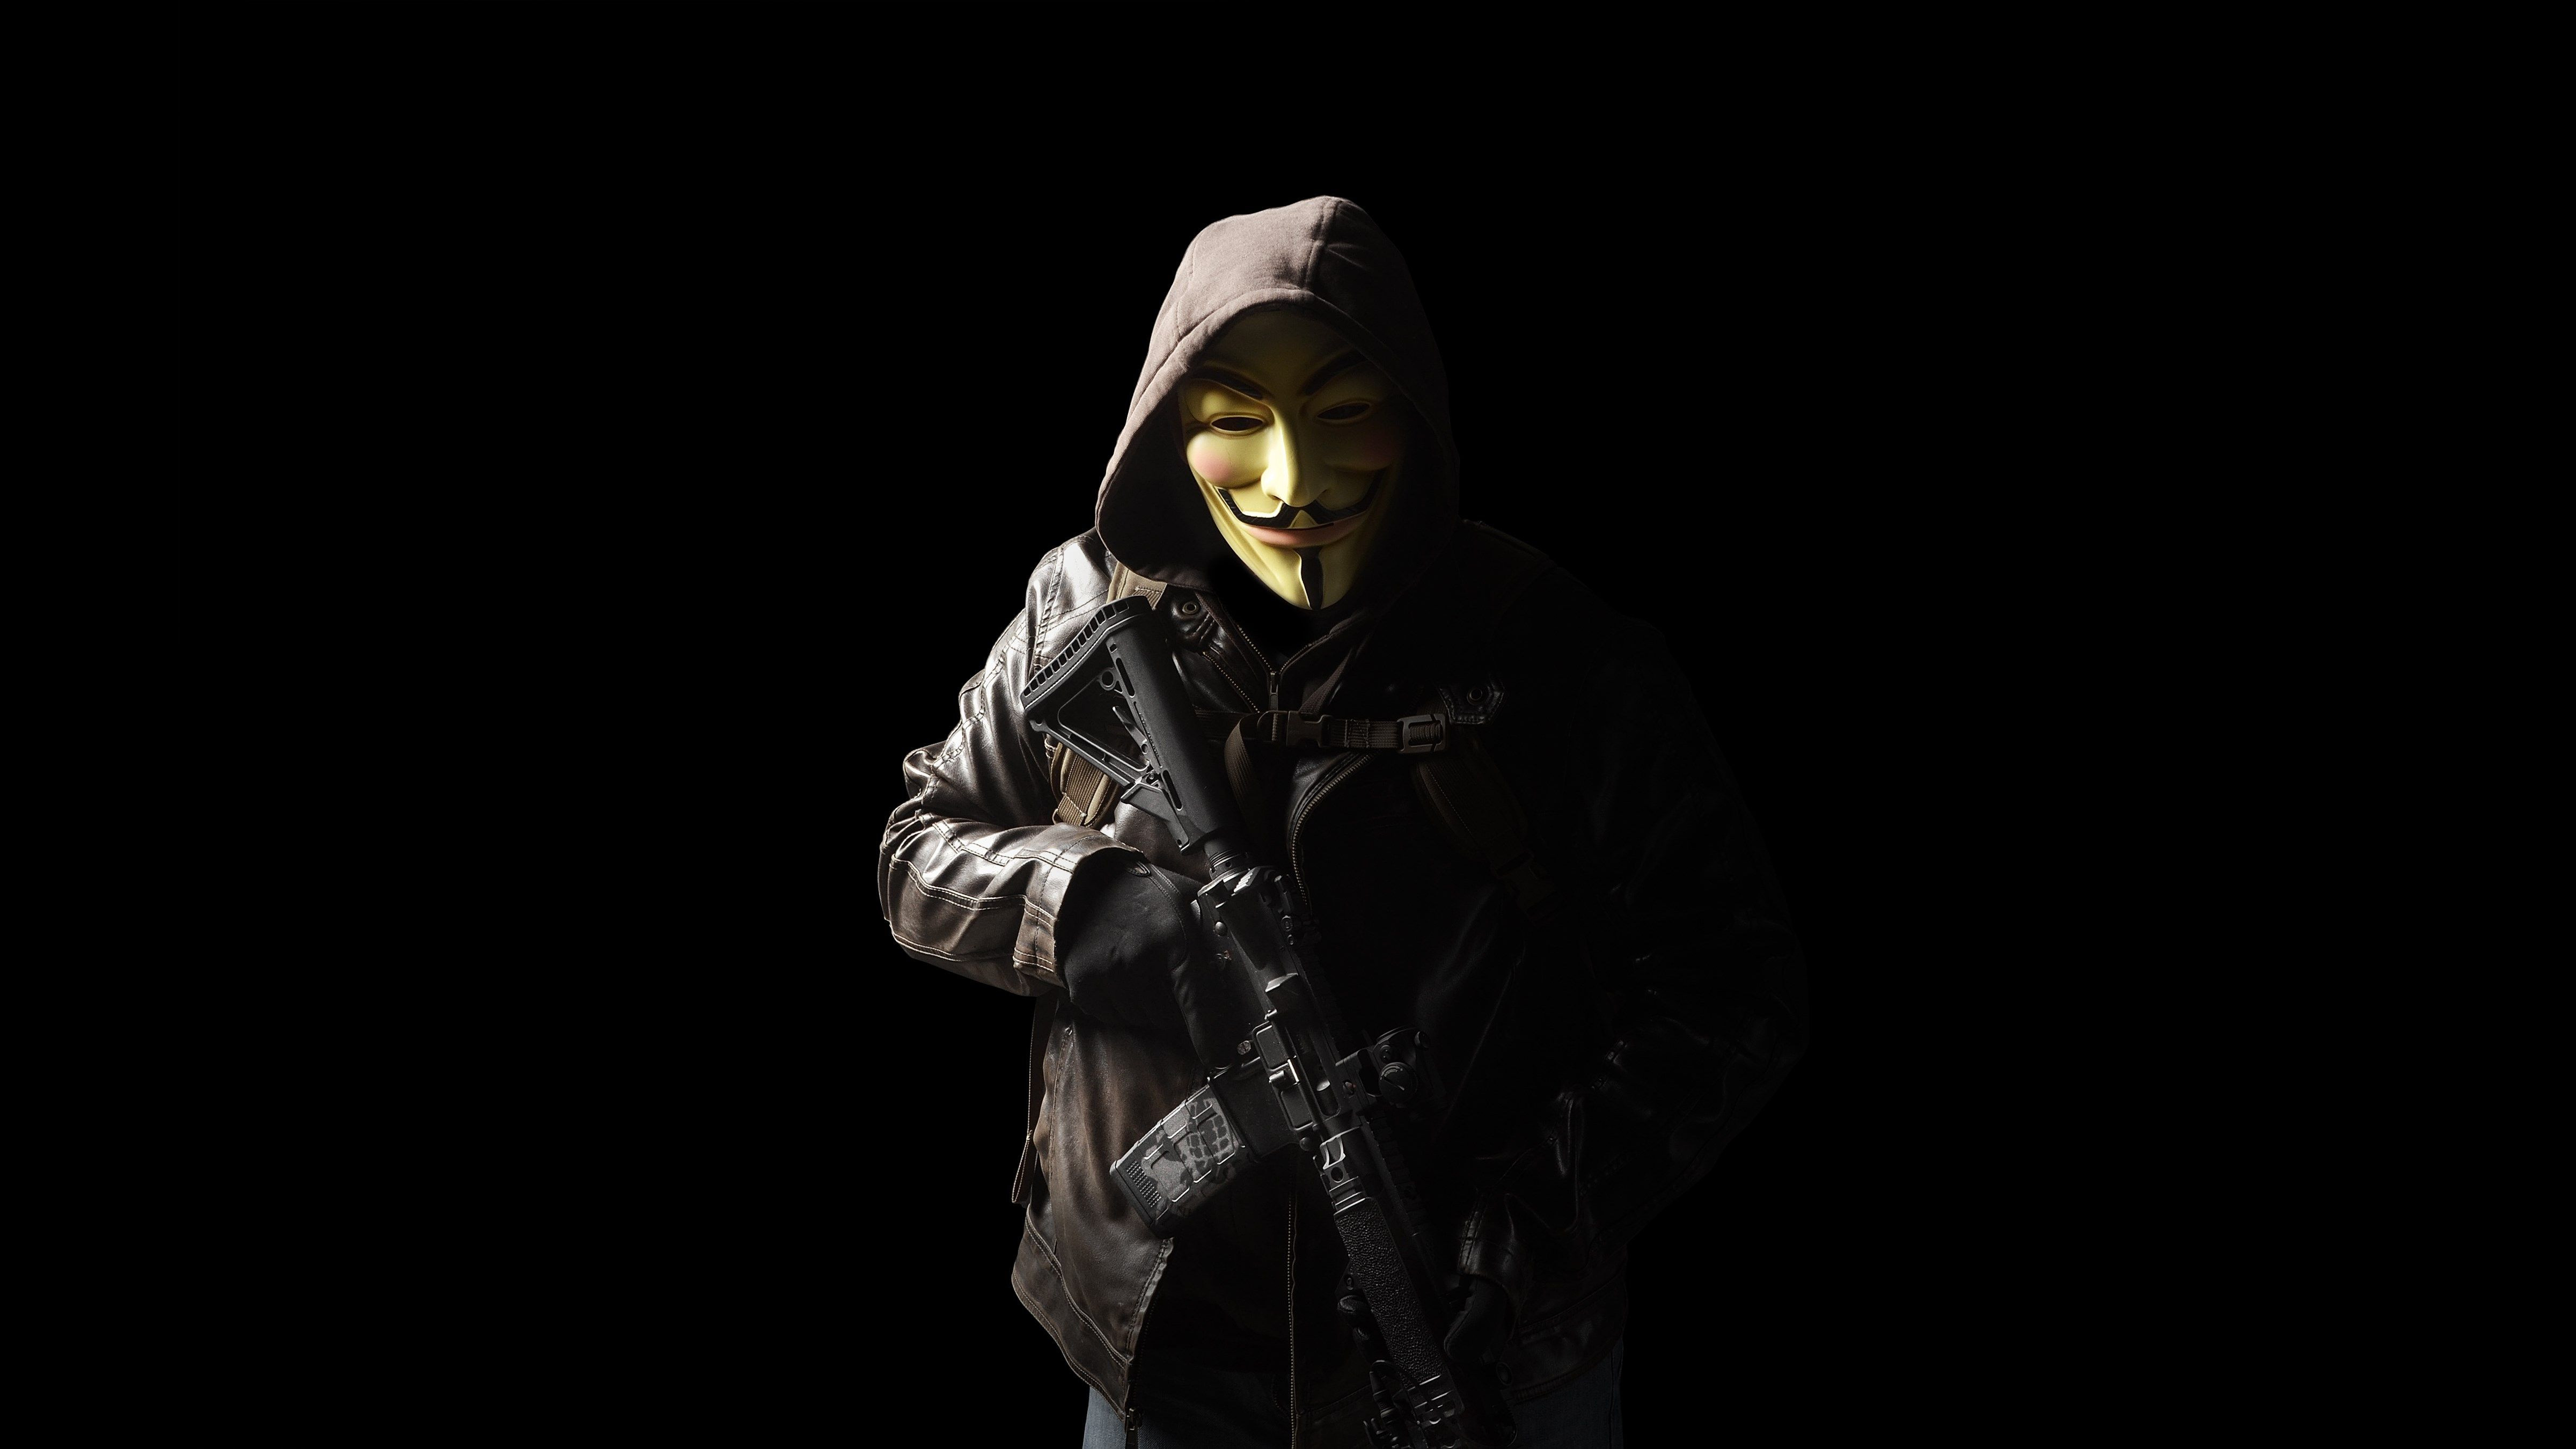 anonymous mask person with gun 5k hd others 4k wallpapers images